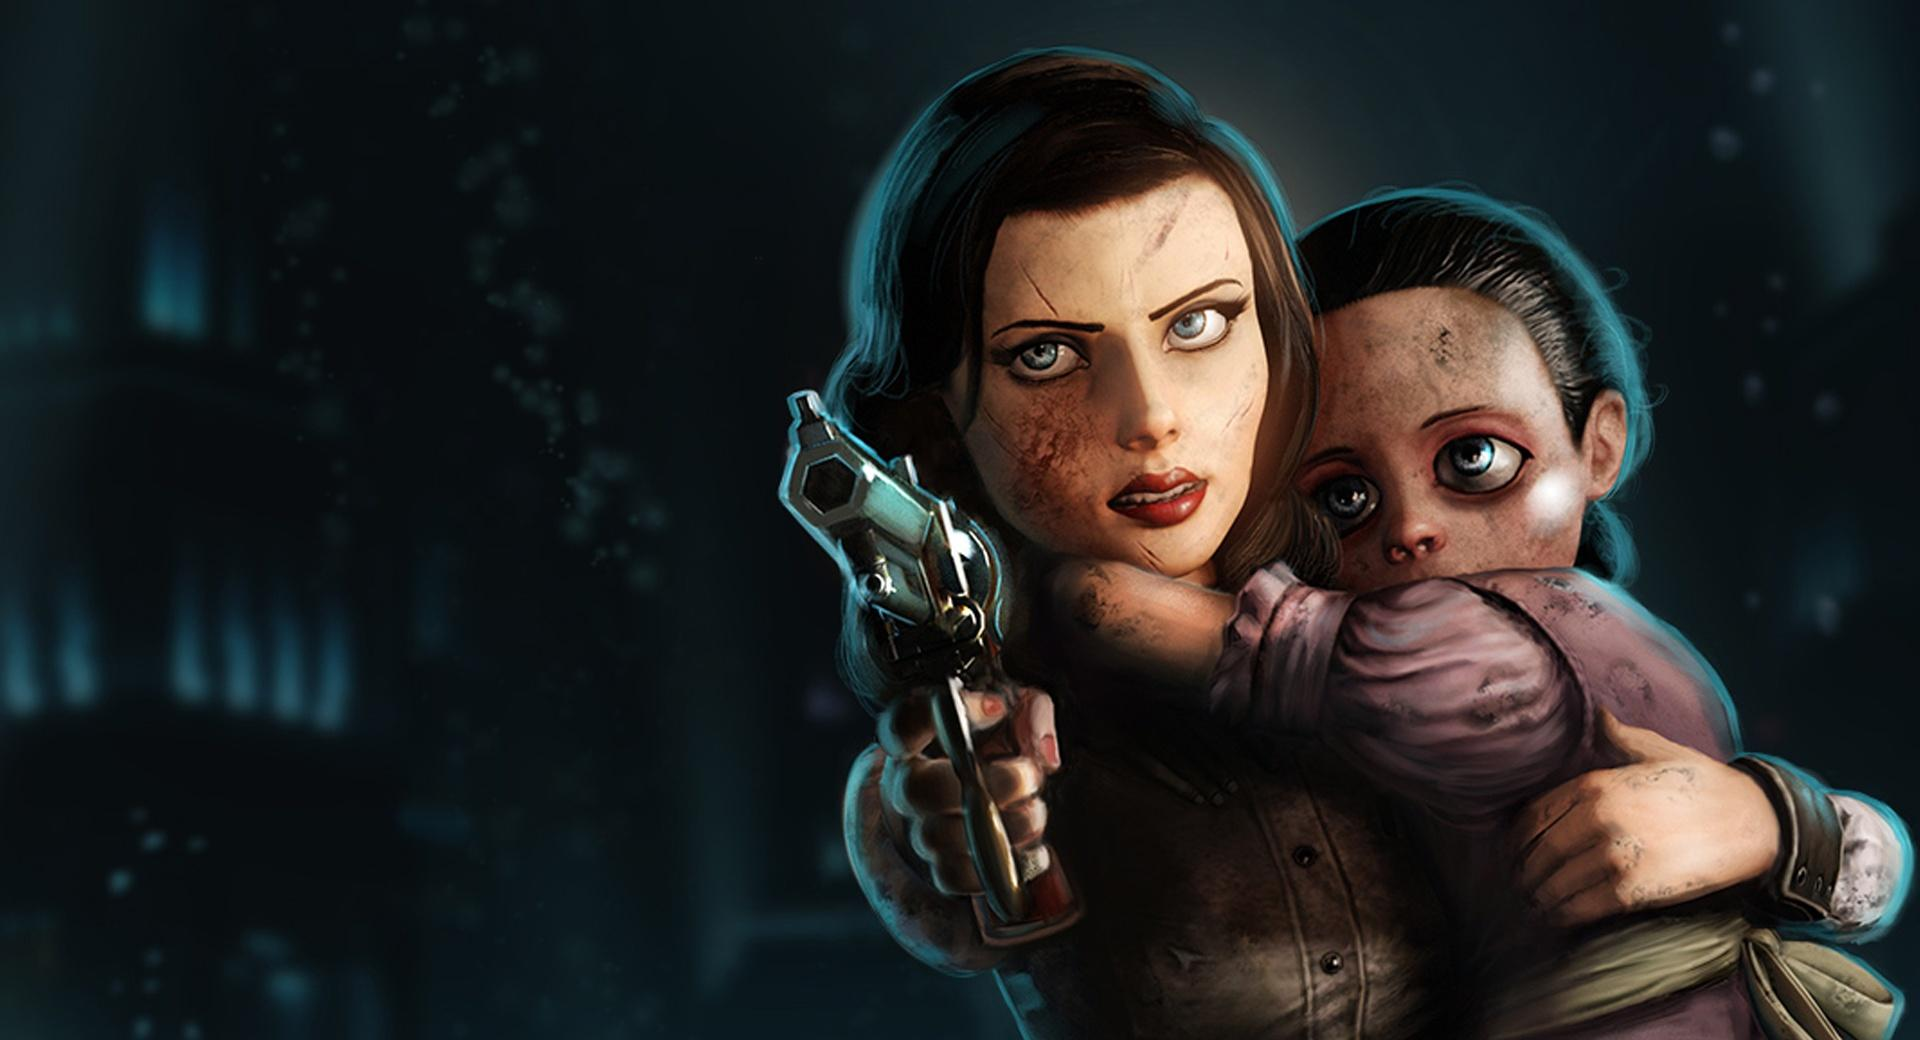 Elizabeth Bioshock Infinite Burial At Sea at 2048 x 2048 iPad size wallpapers HD quality